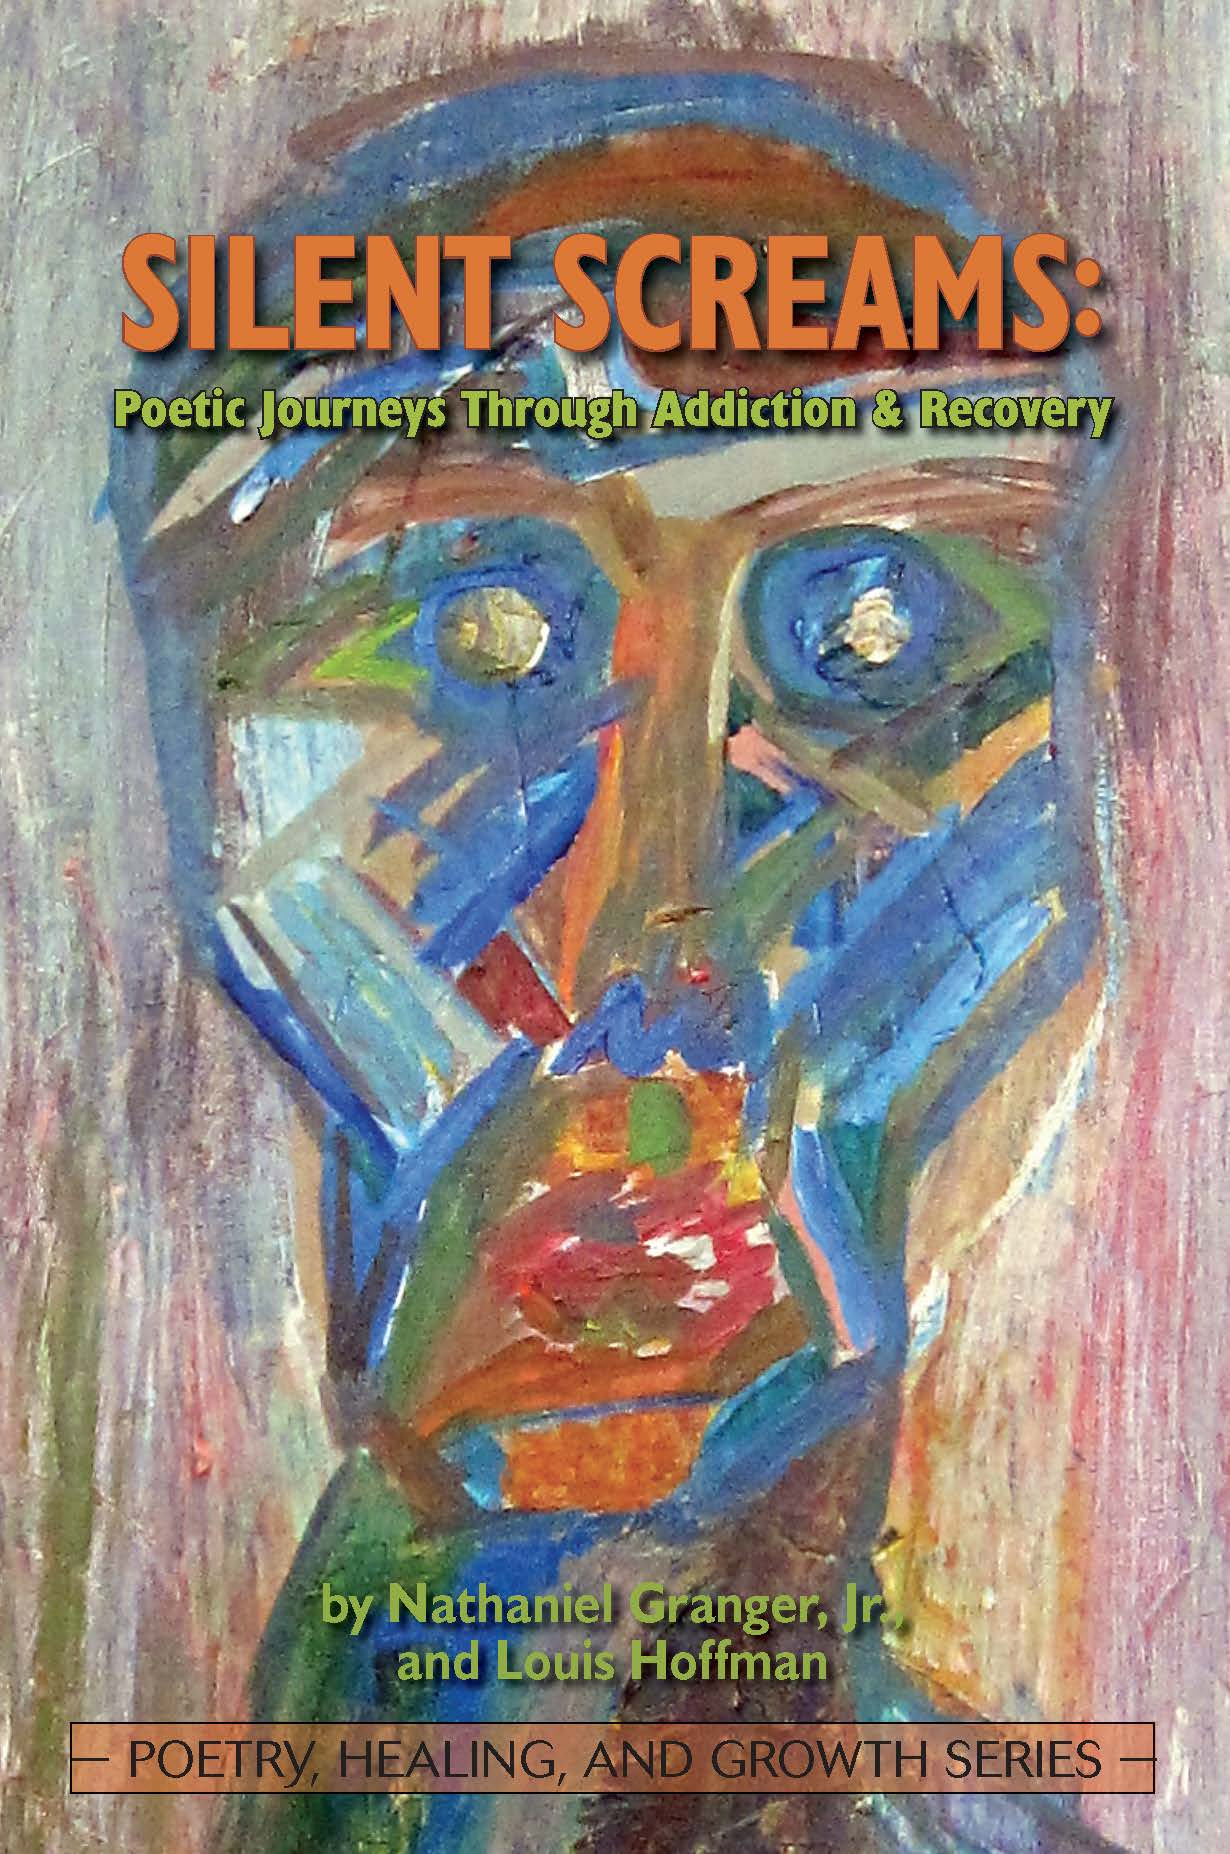 Silent Screams: Poetic Journeys Through Addiction & Recovery Image